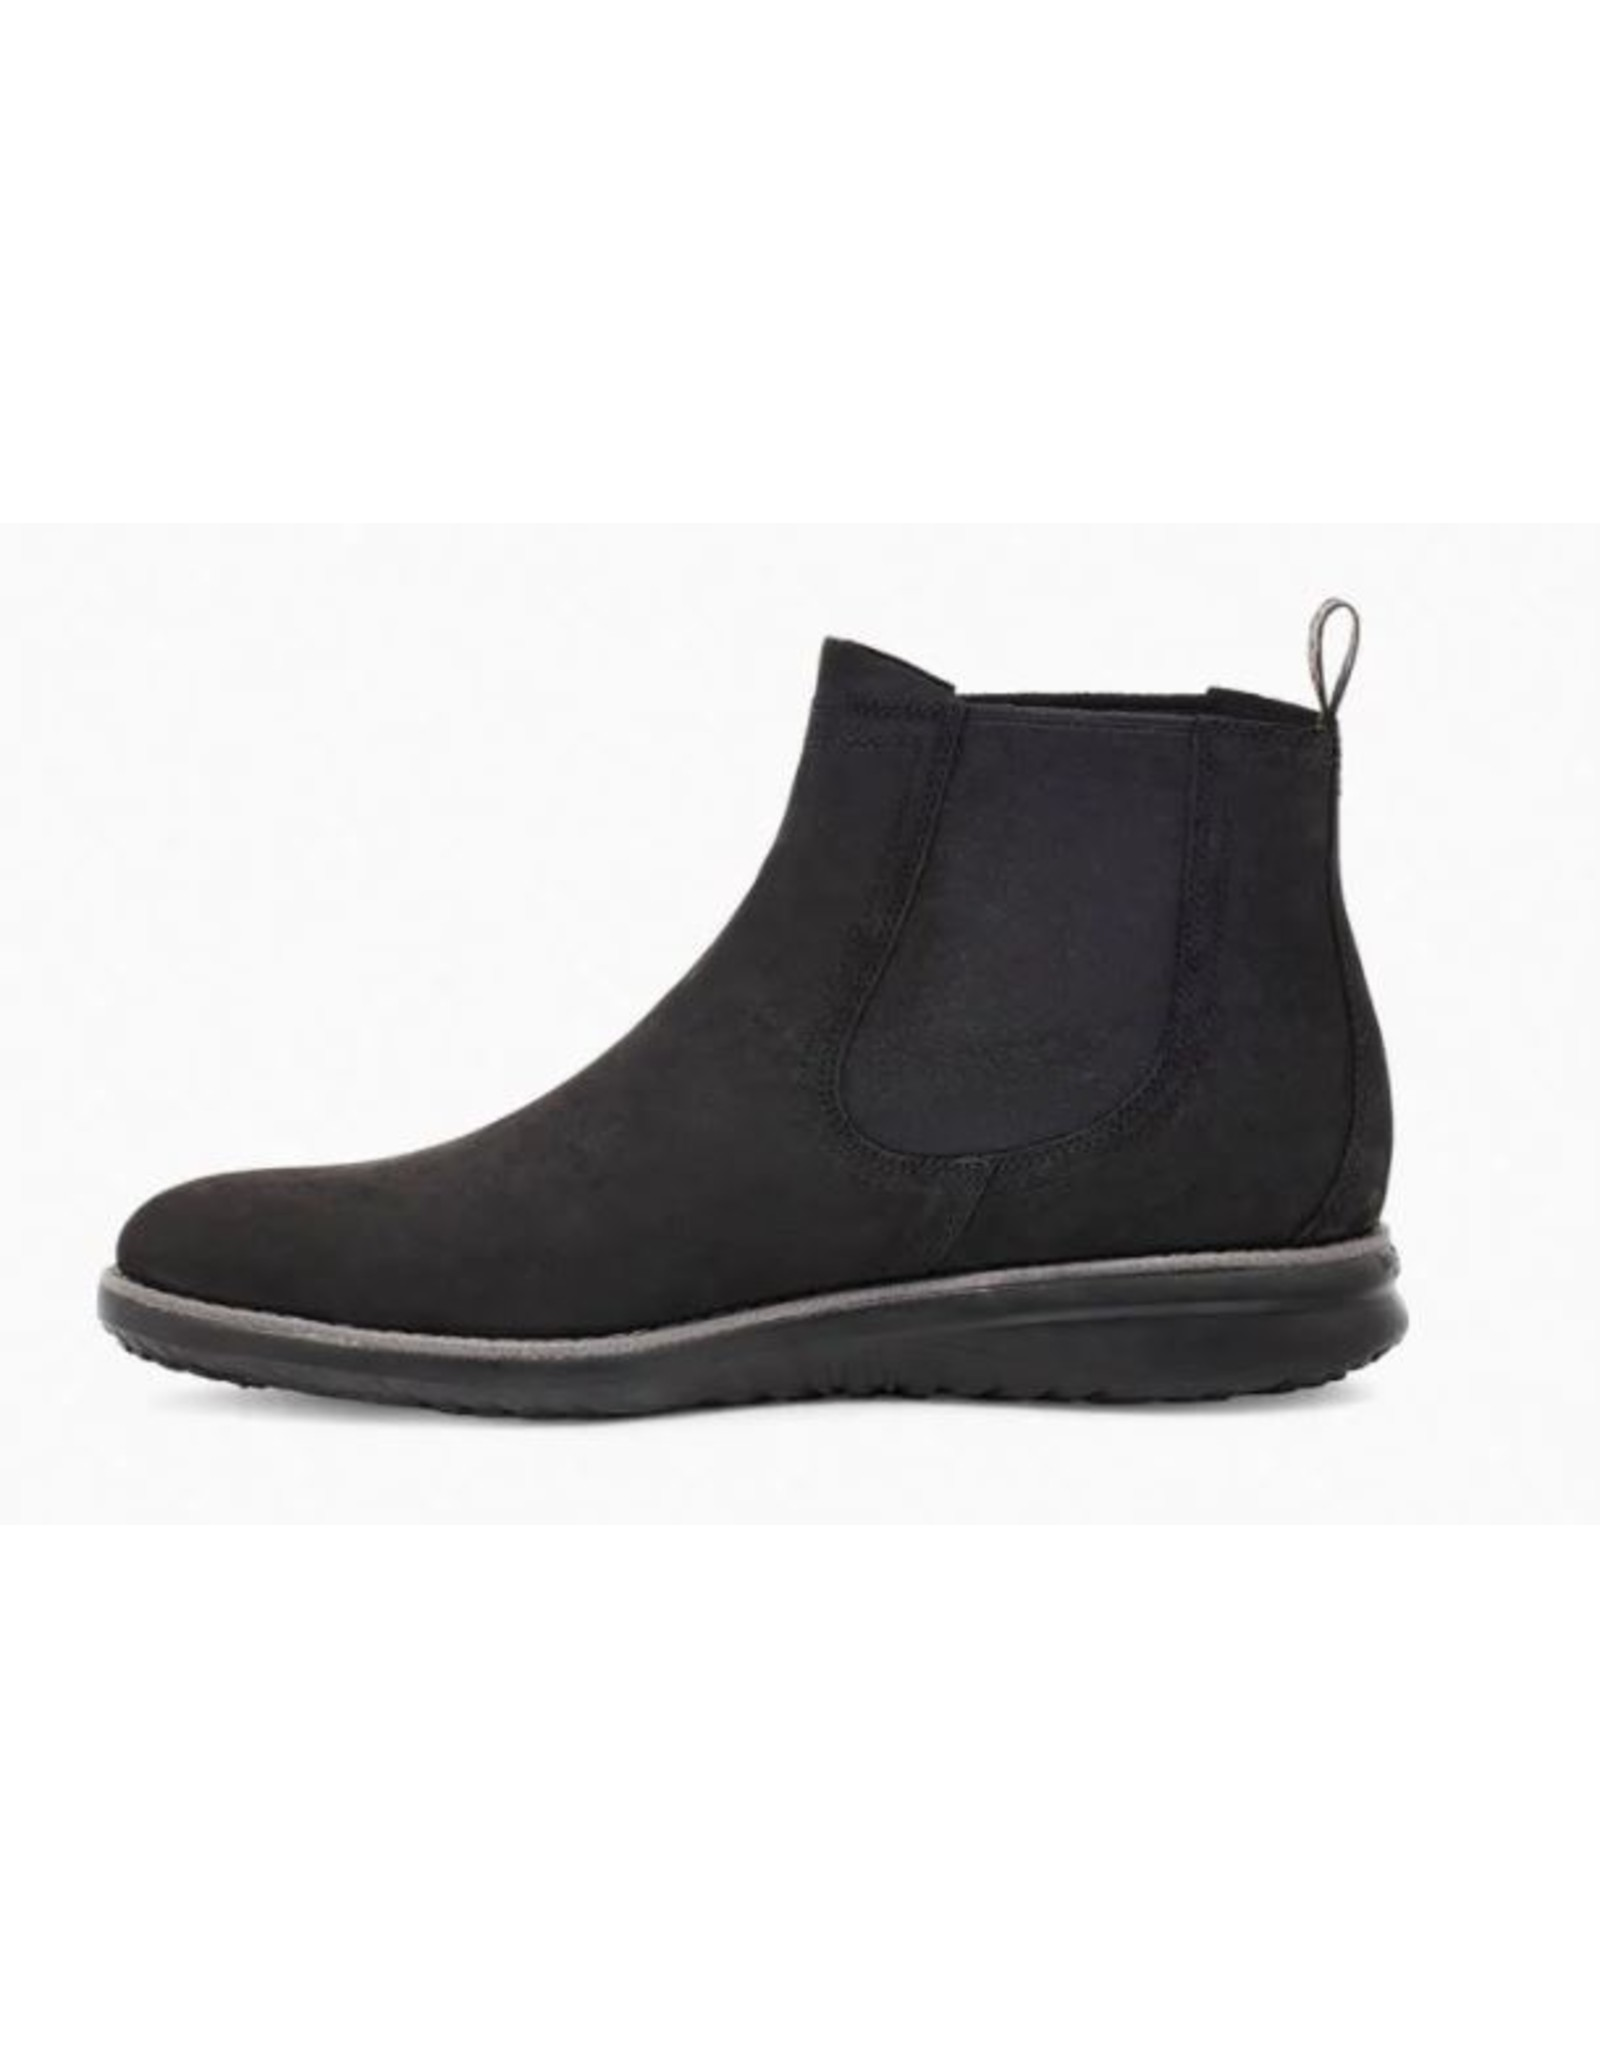 Uggs Men's Union Chelsea